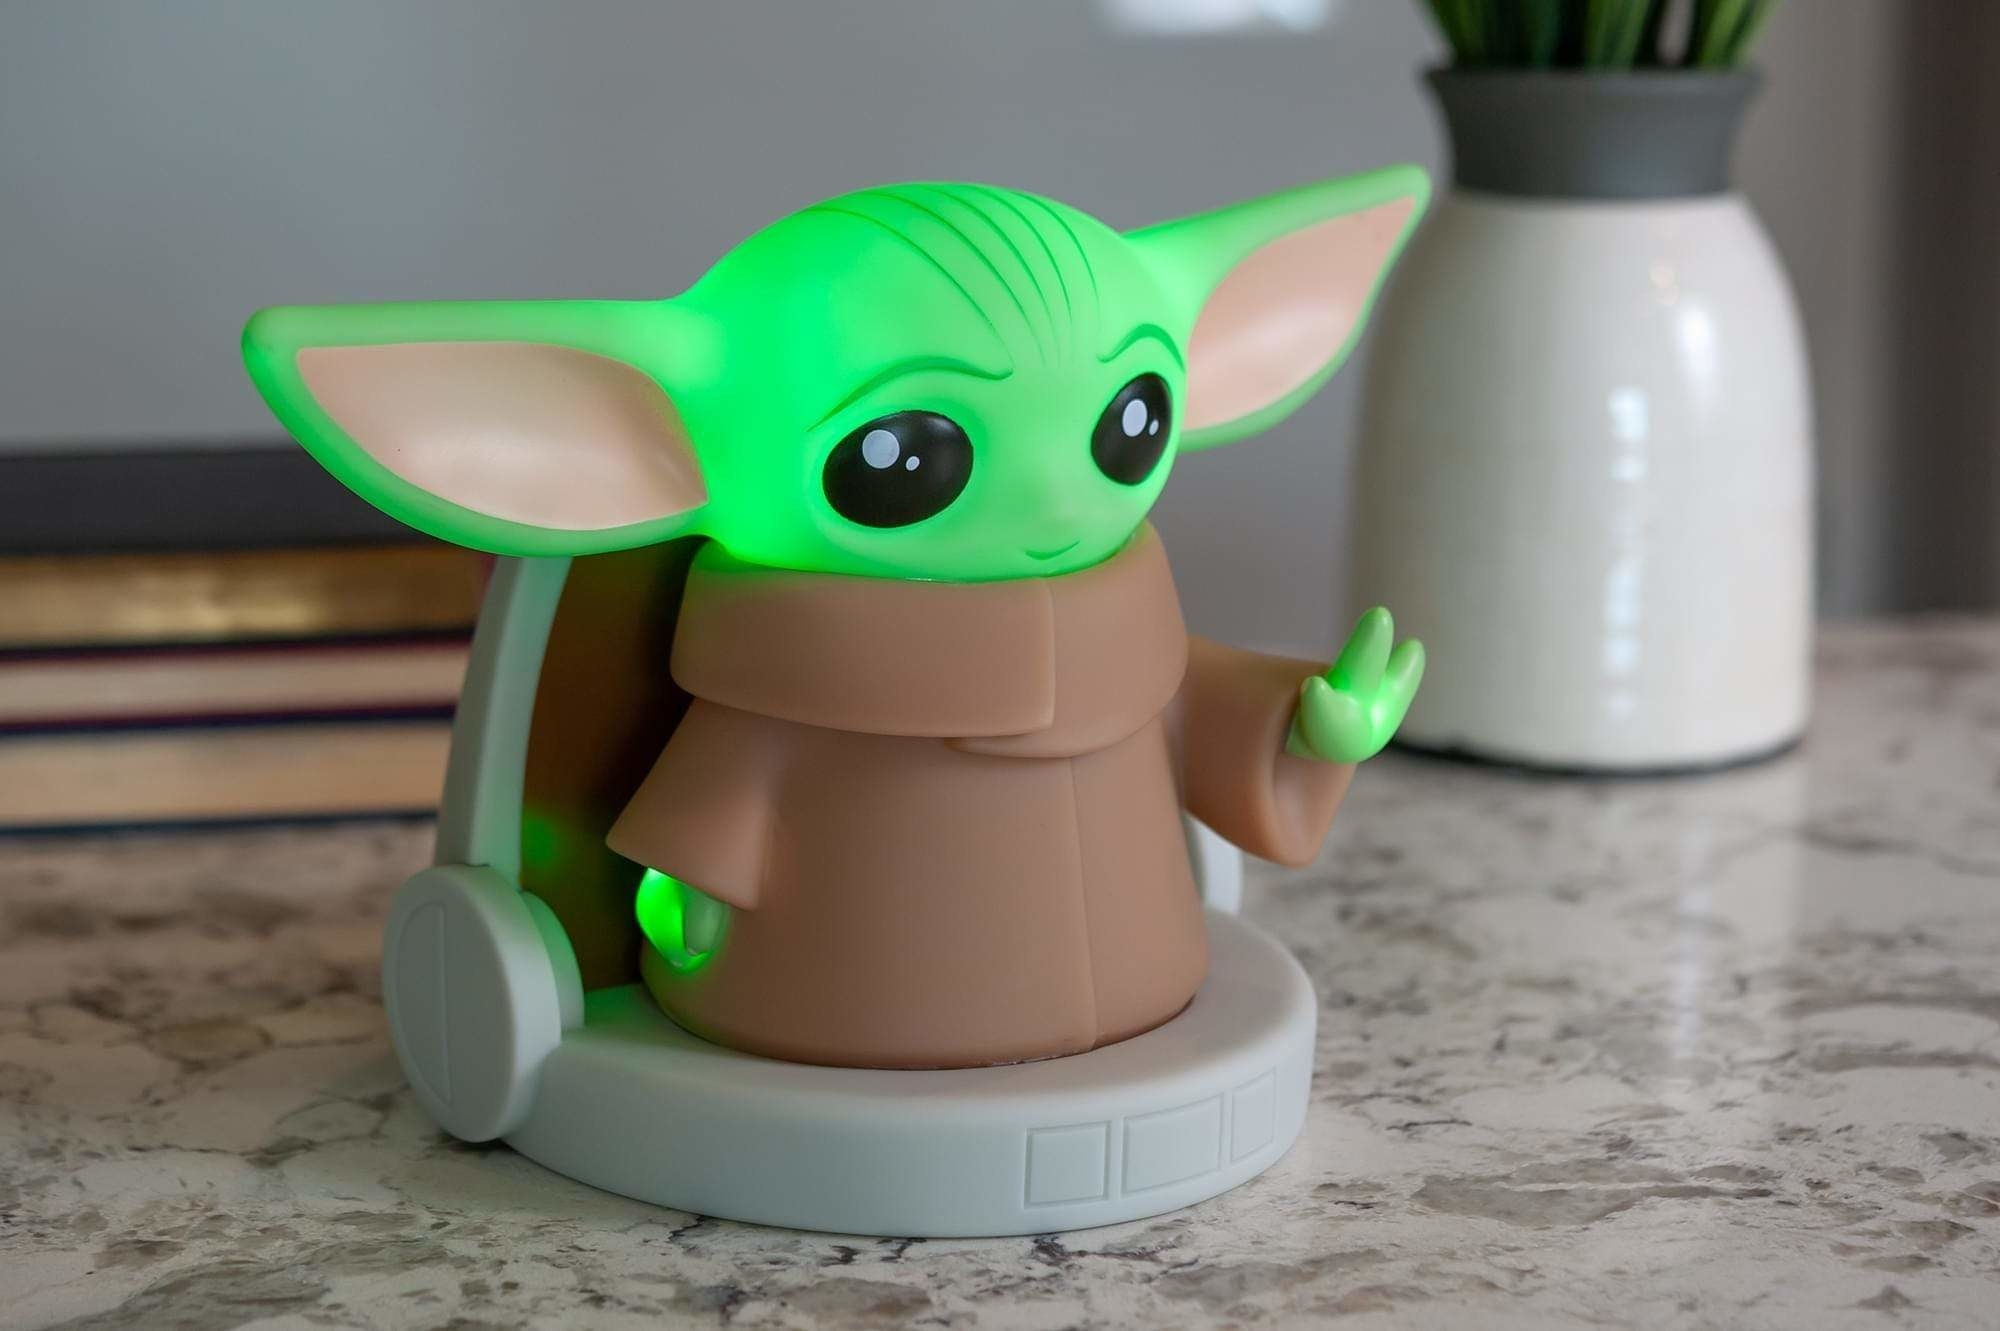 The seven-inch lamp shaped like a cutesy Baby Yoda in his pod